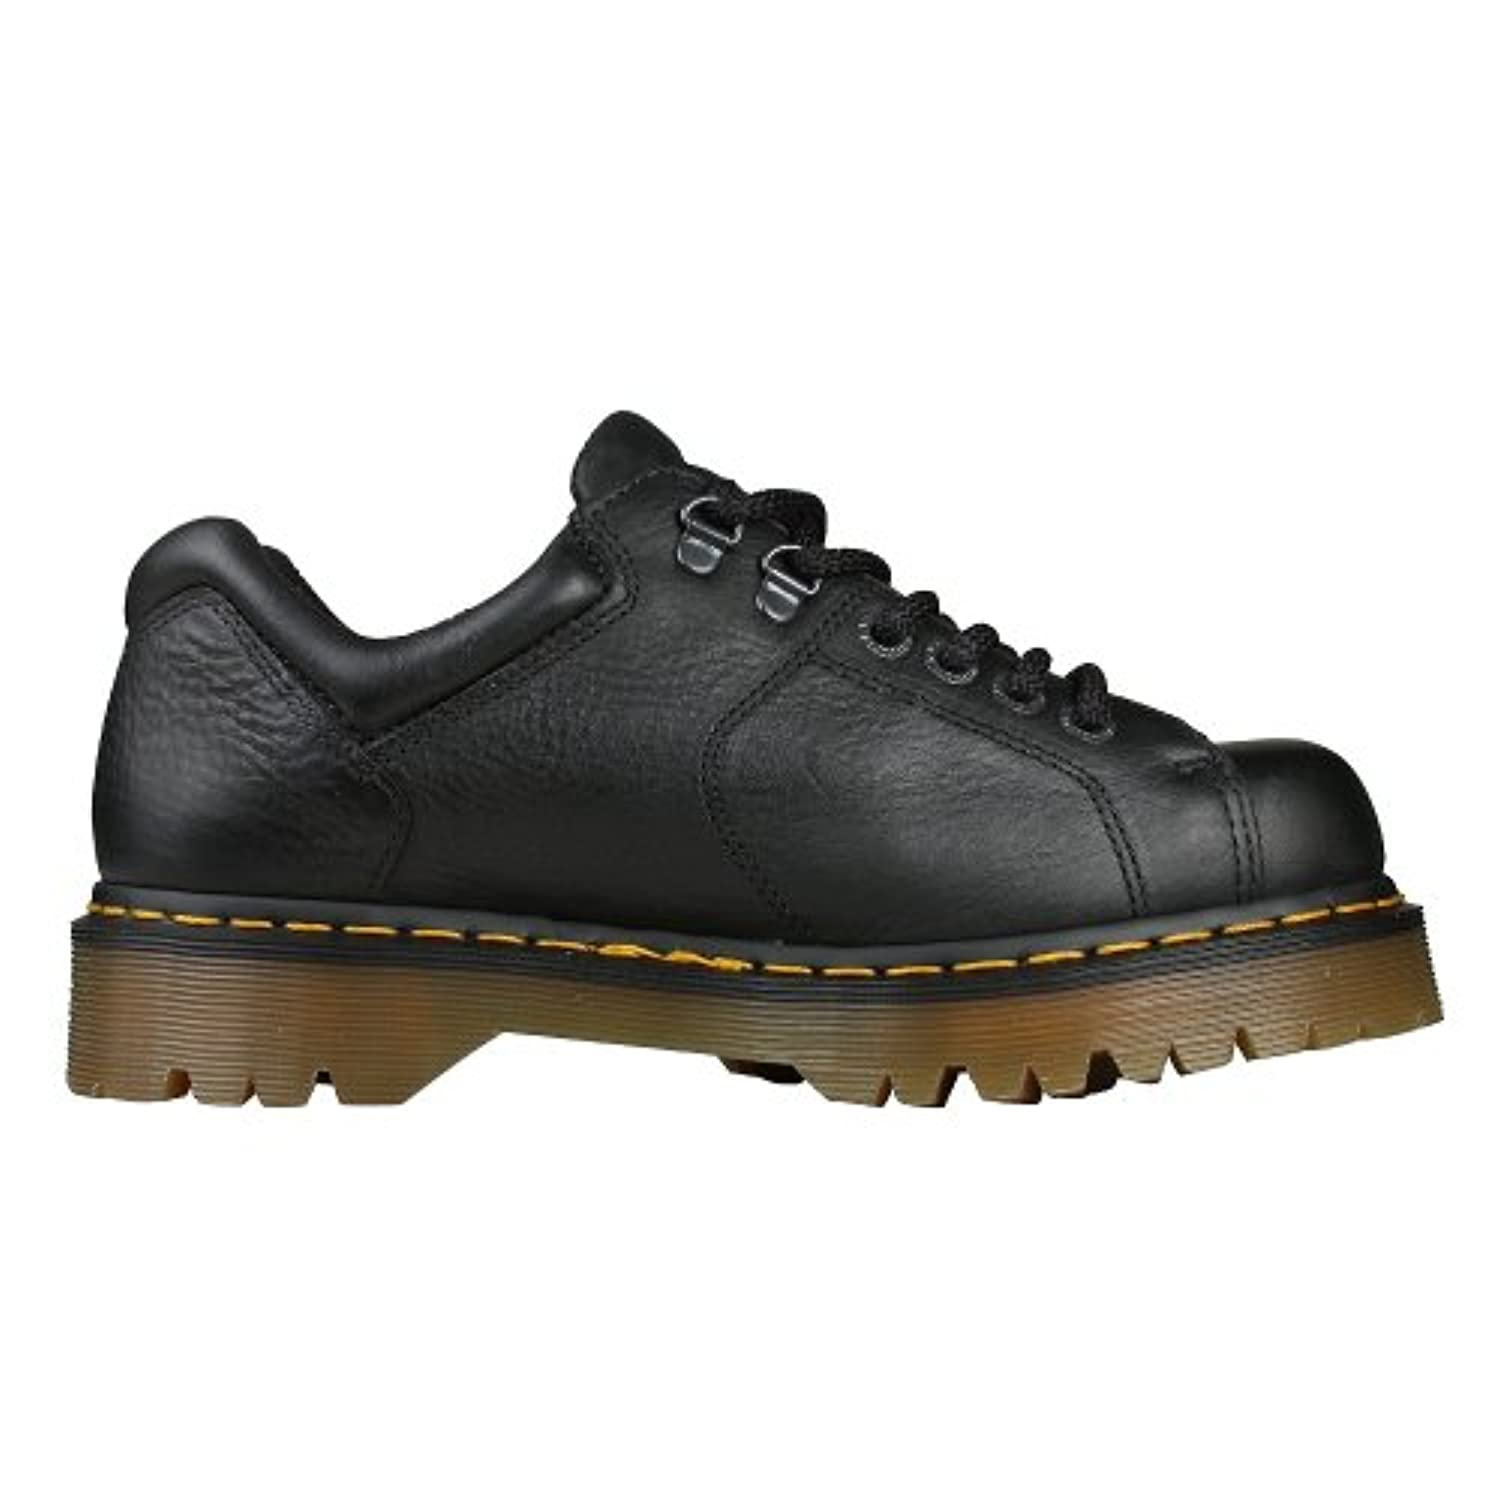 Dr. Martens Men's '8312 FBX' Laced Shoe, Black Grizzly, UK 3